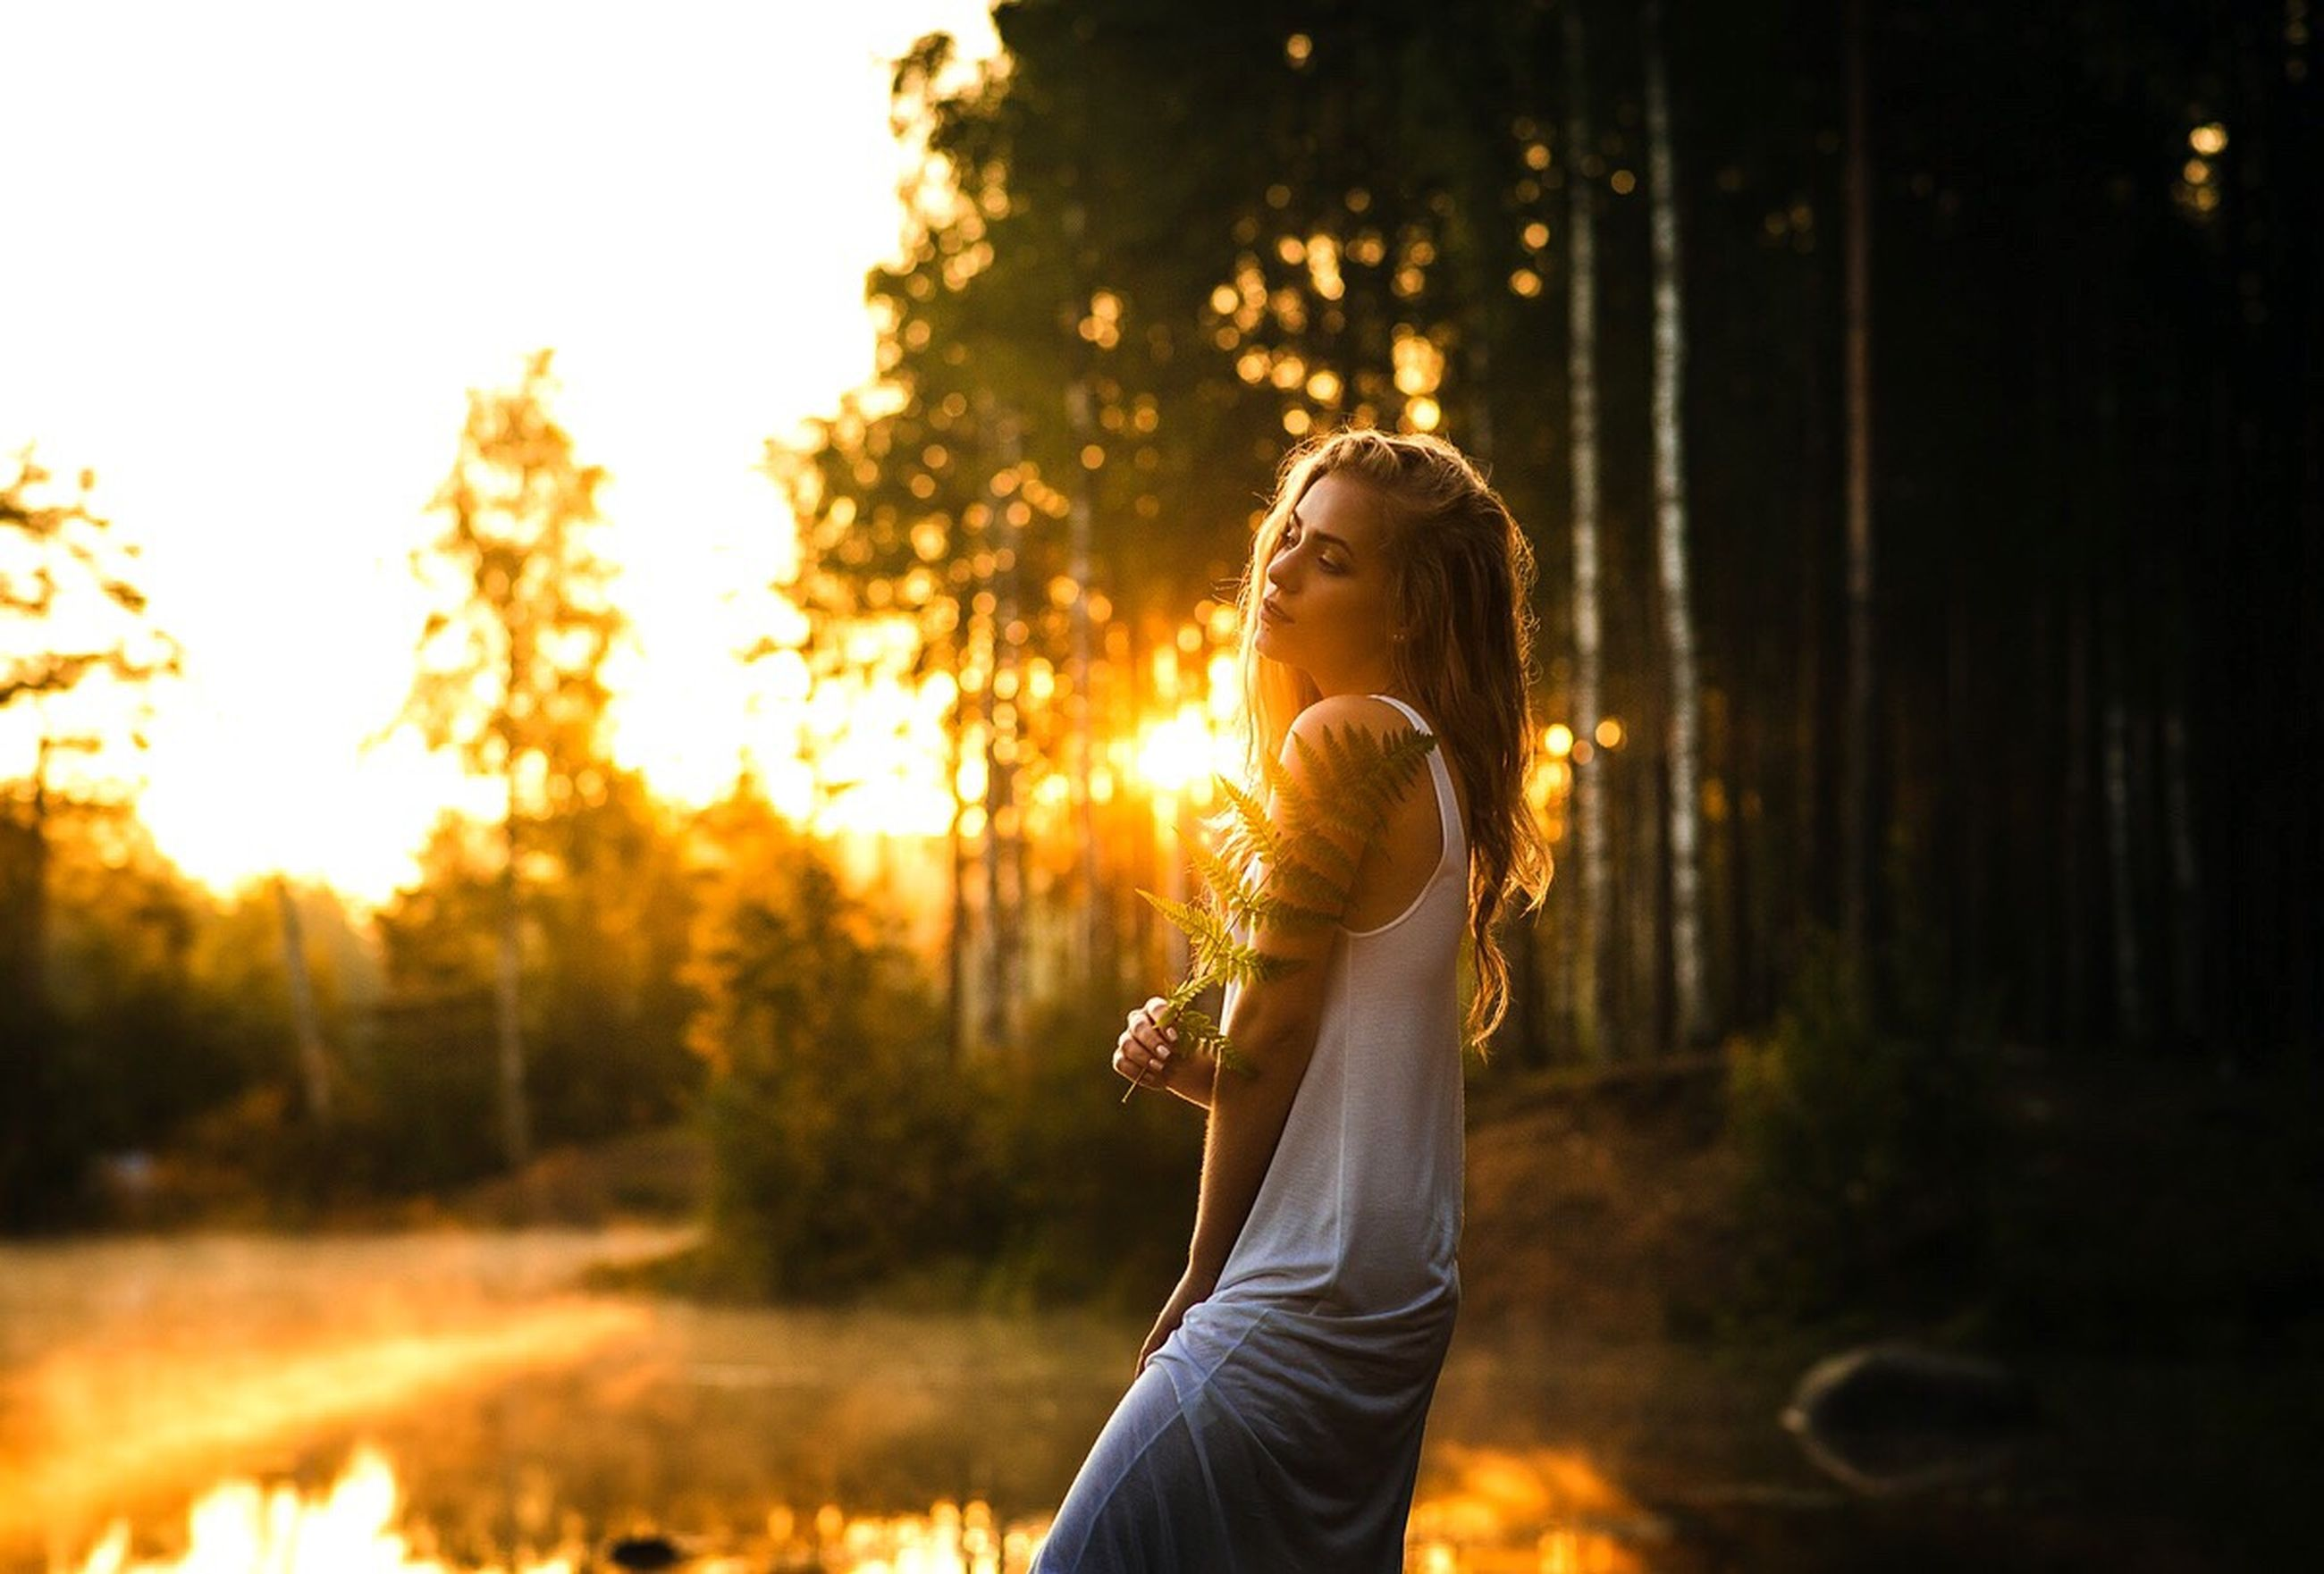 lifestyles, leisure activity, lens flare, sunset, sun, focus on foreground, sunbeam, casual clothing, outdoors, nature, sky, back lit, selective focus, orange color, plant, tranquility, illuminated, grass, growth, beauty in nature